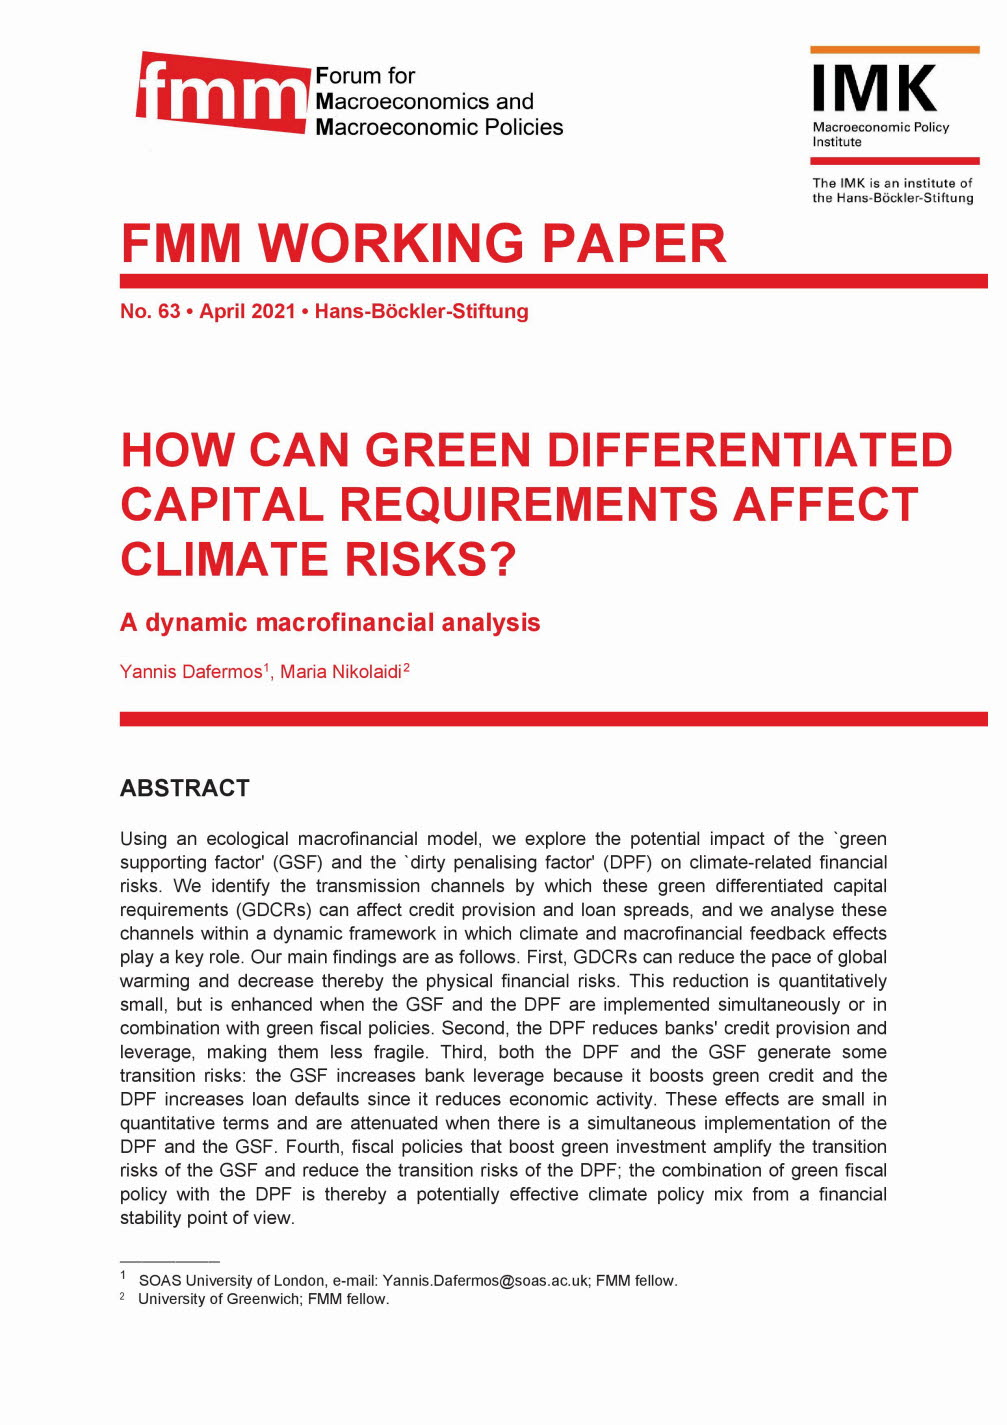 How can green differentiated capital requirements affect climate risks?